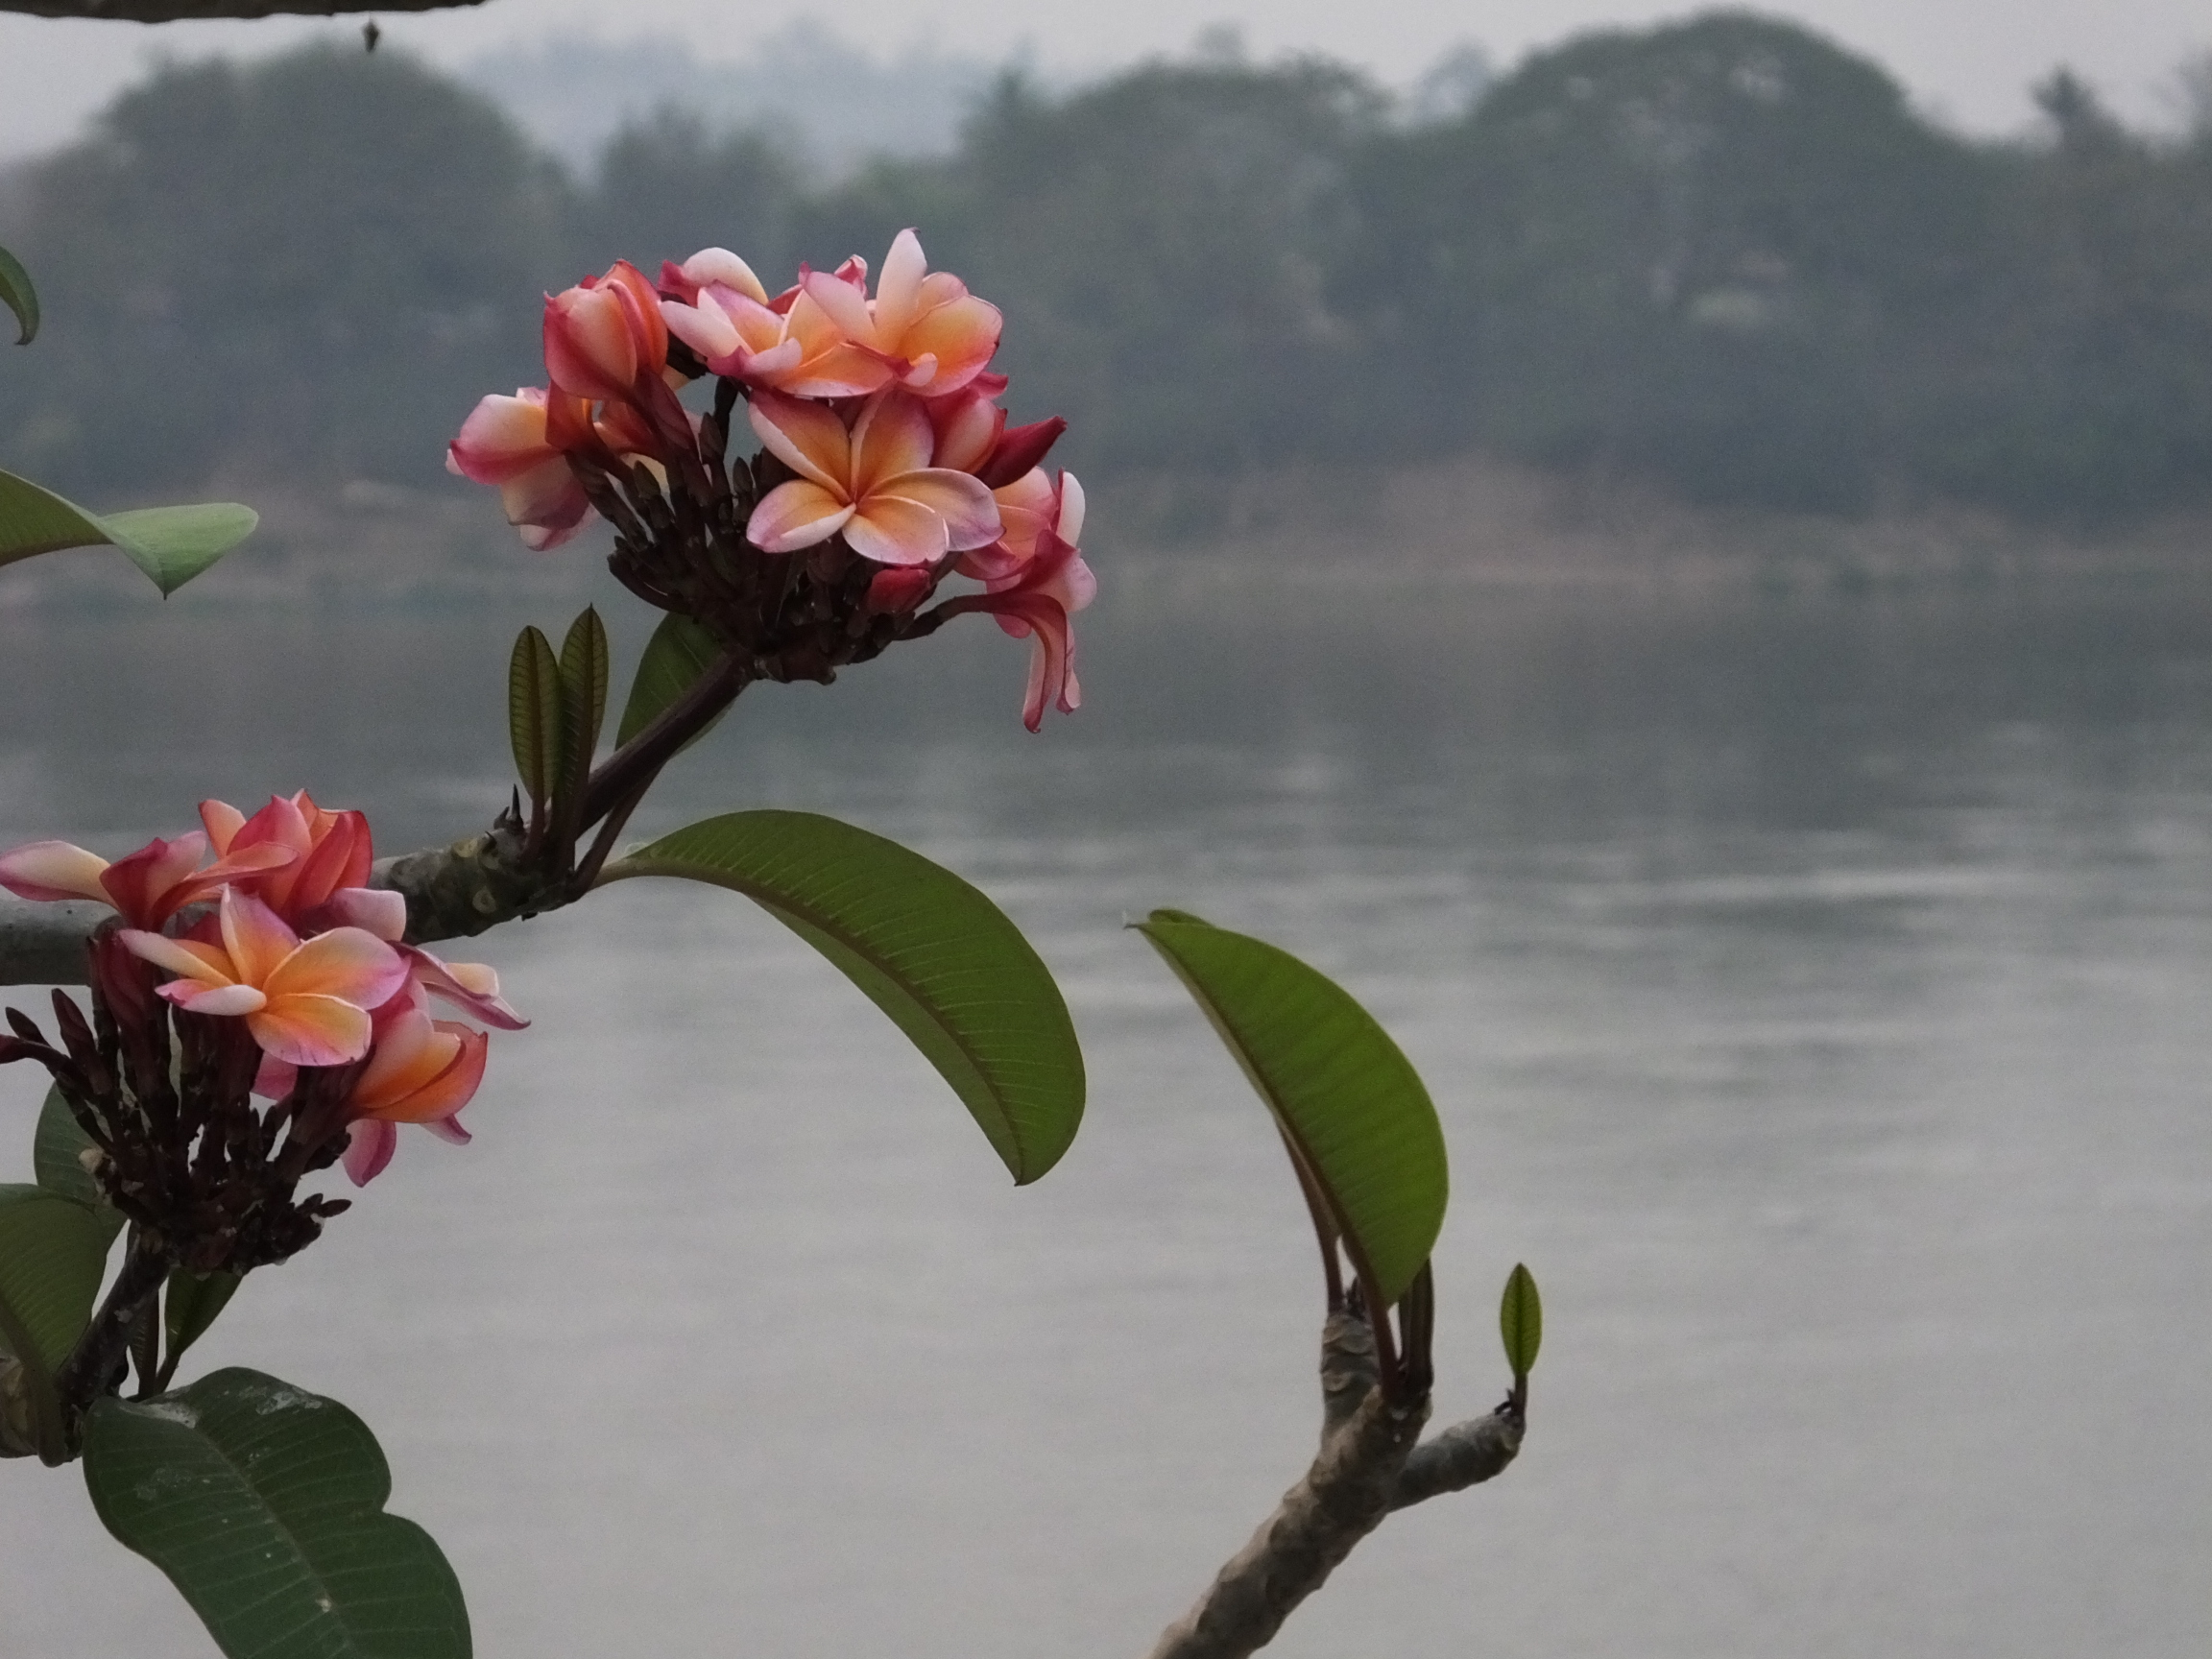 Flowers along the Mekong River